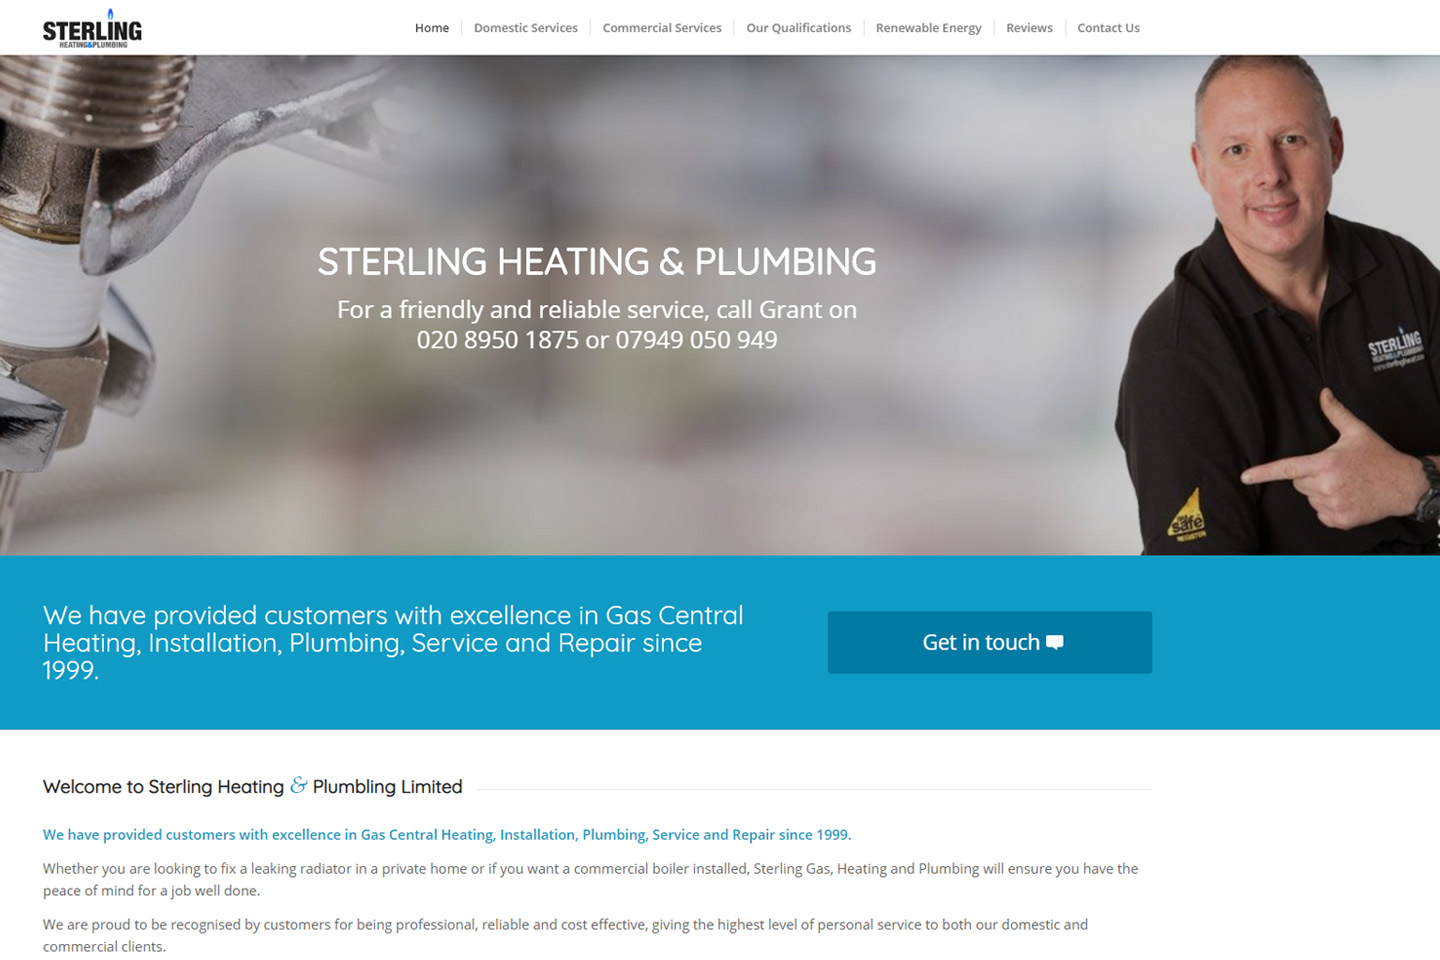 Sterling Heating & Plumbing